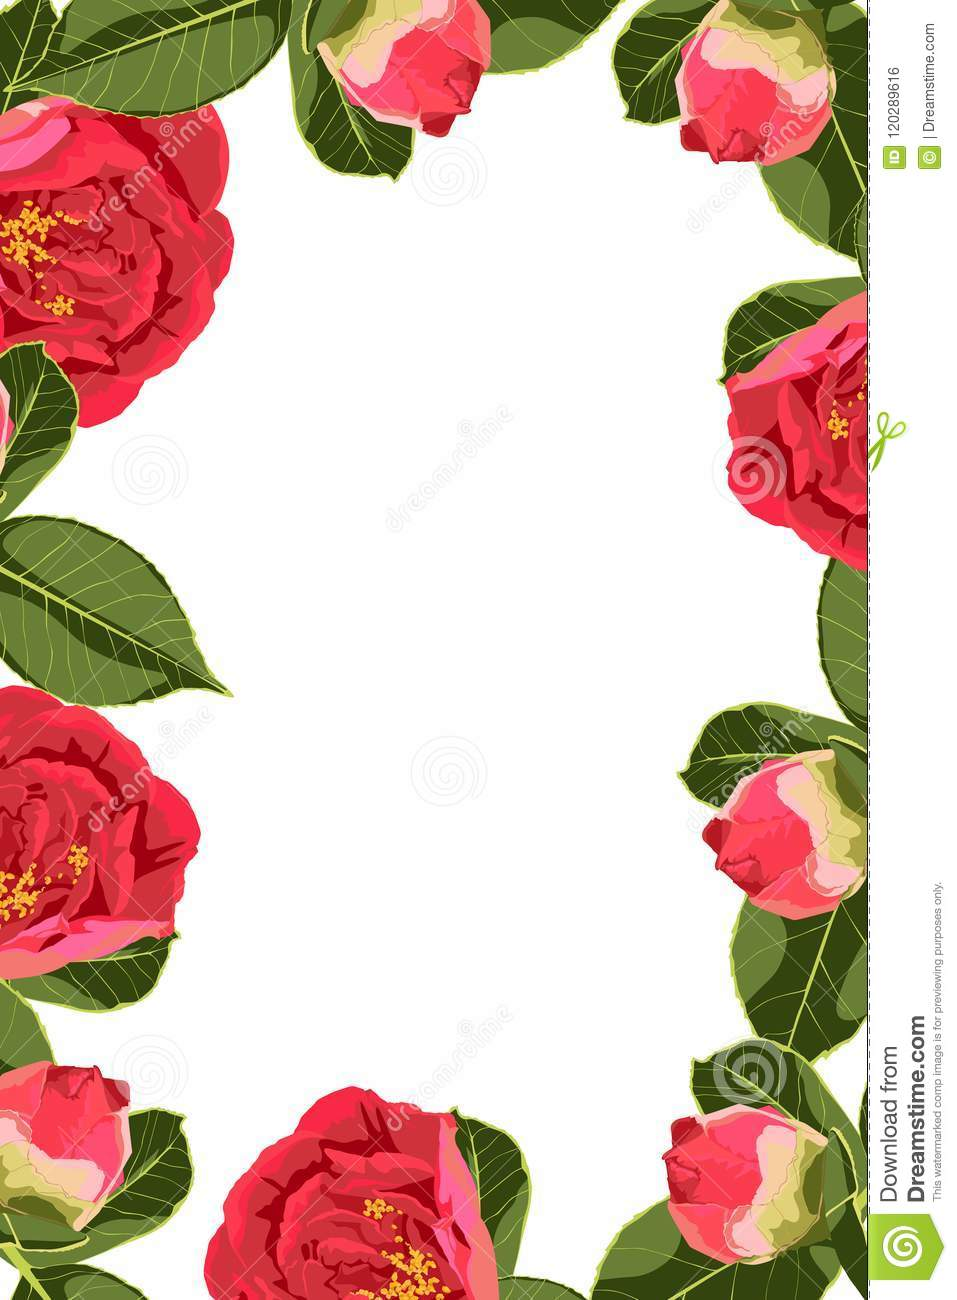 Flowers Design Border Frame Template With Green Leaves And Red